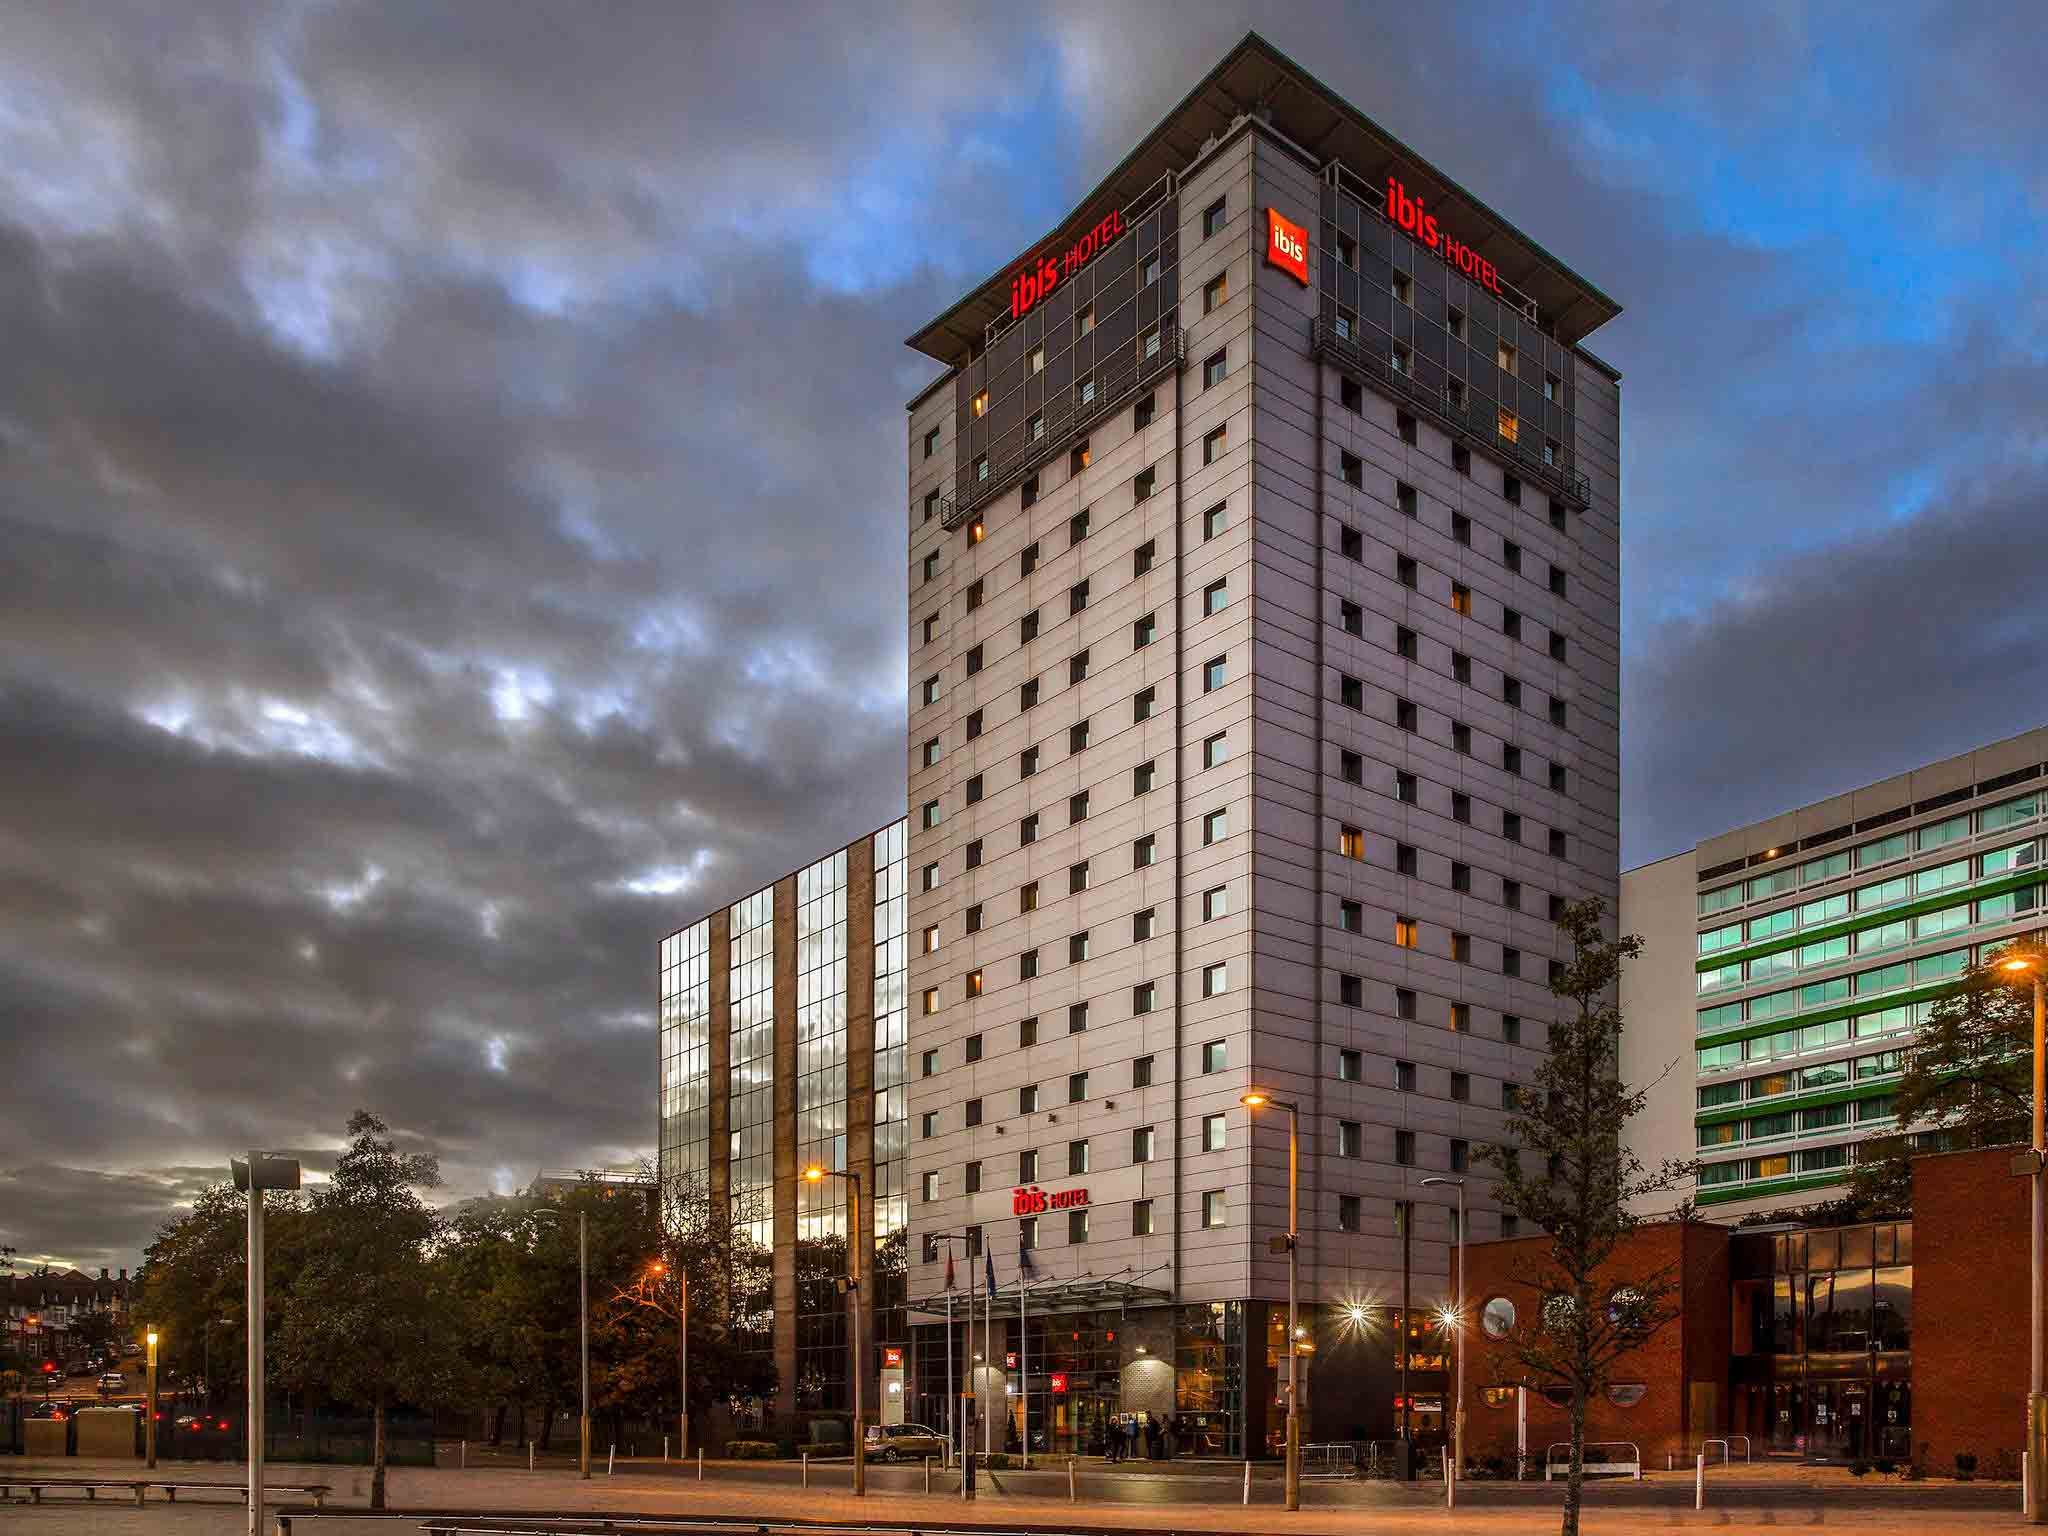 Hotel Ibis London Wembley